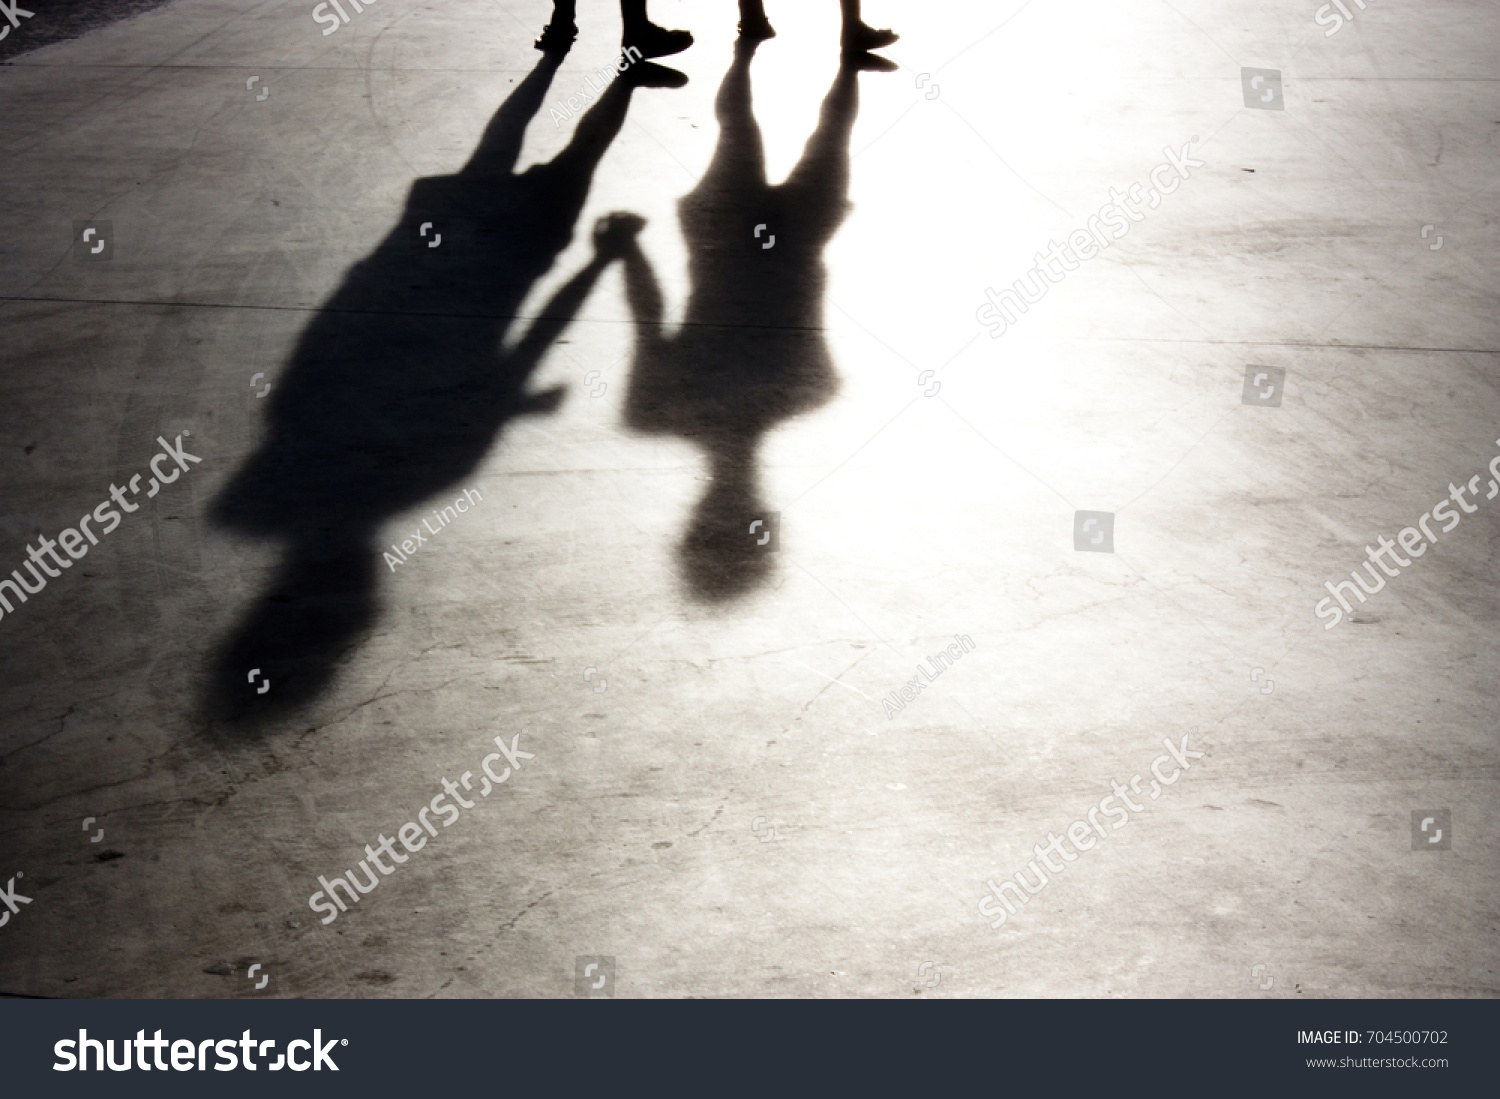 Blurry two people holding hands walking silhouette and shadow in black and  white 29eb09576a